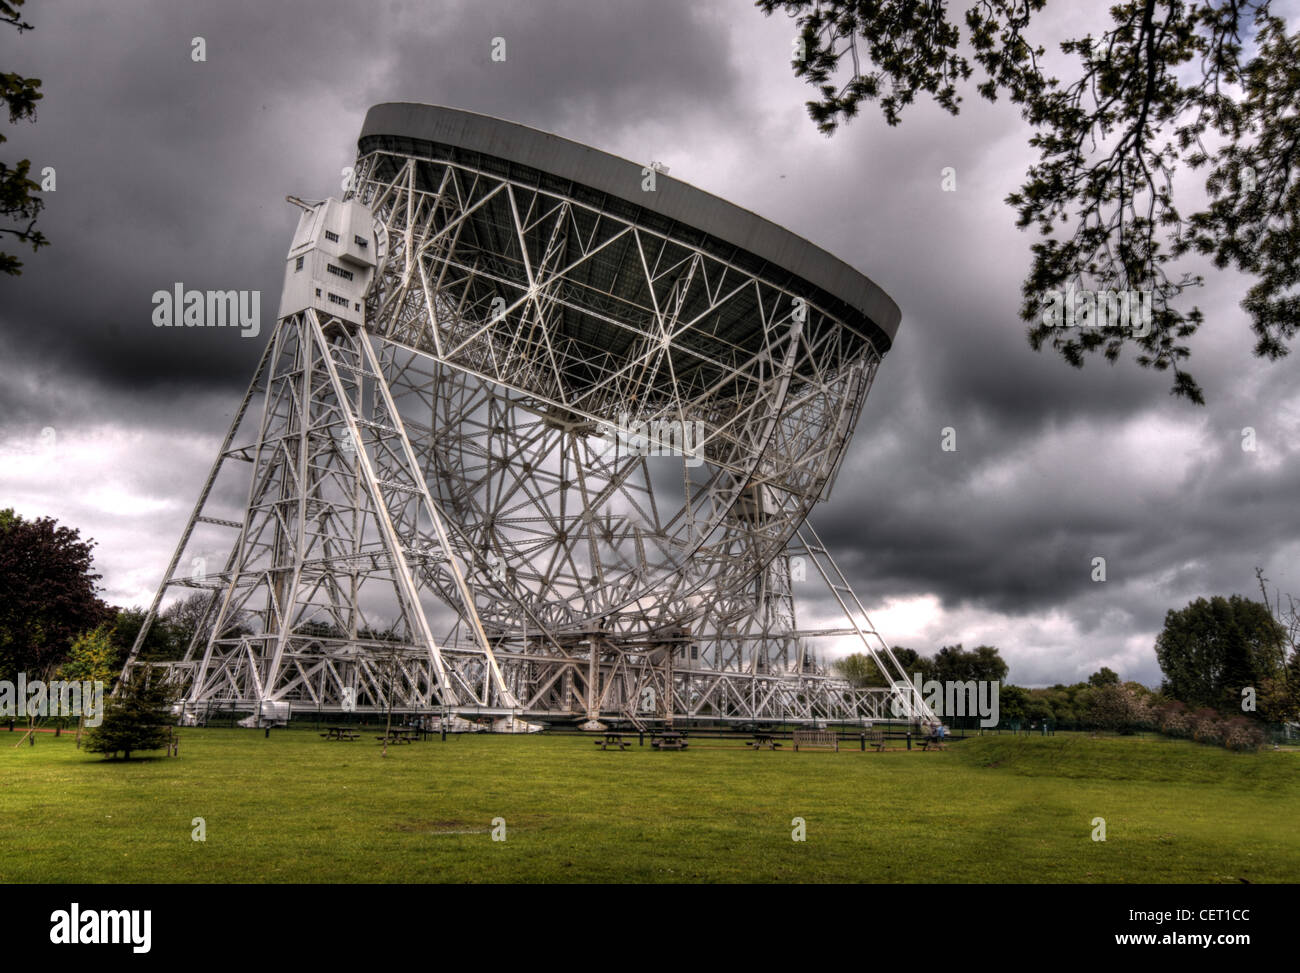 Jodrell Bank Observatory radio Telescope, Holes Chapel, Cheshire, UK - Stock Image